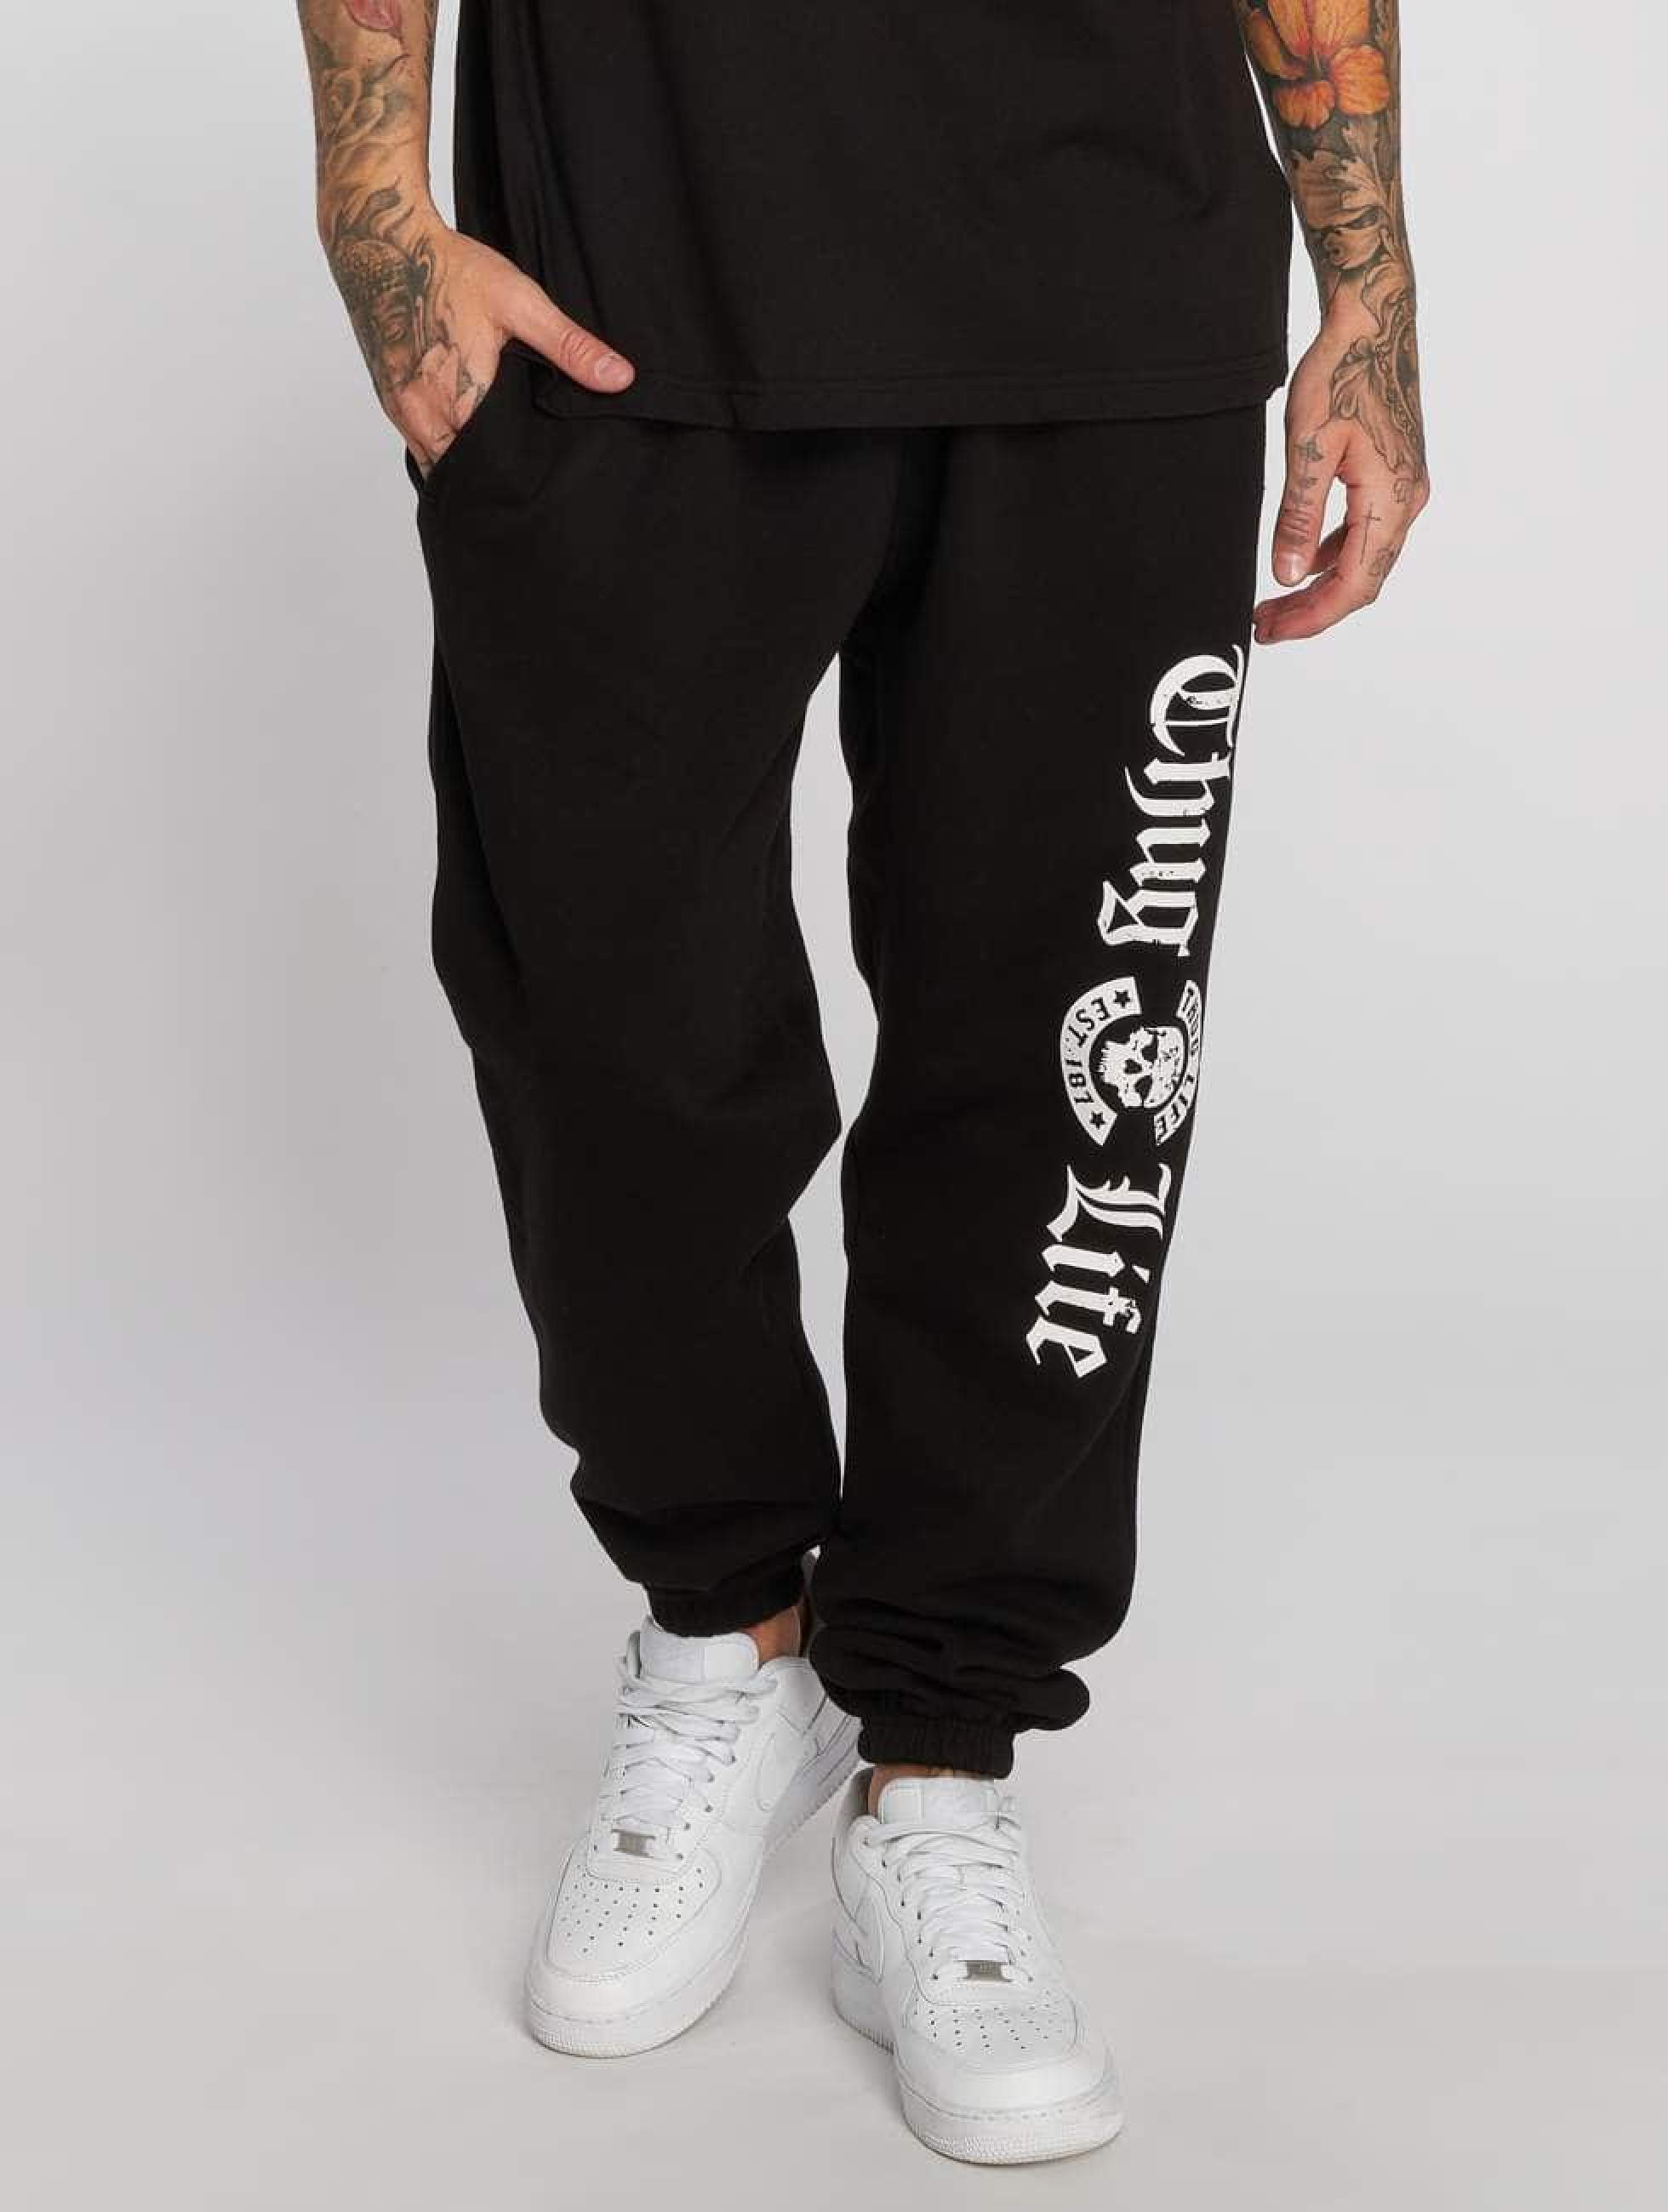 Thug Life / Sweat Pant B.Gothic p in black S